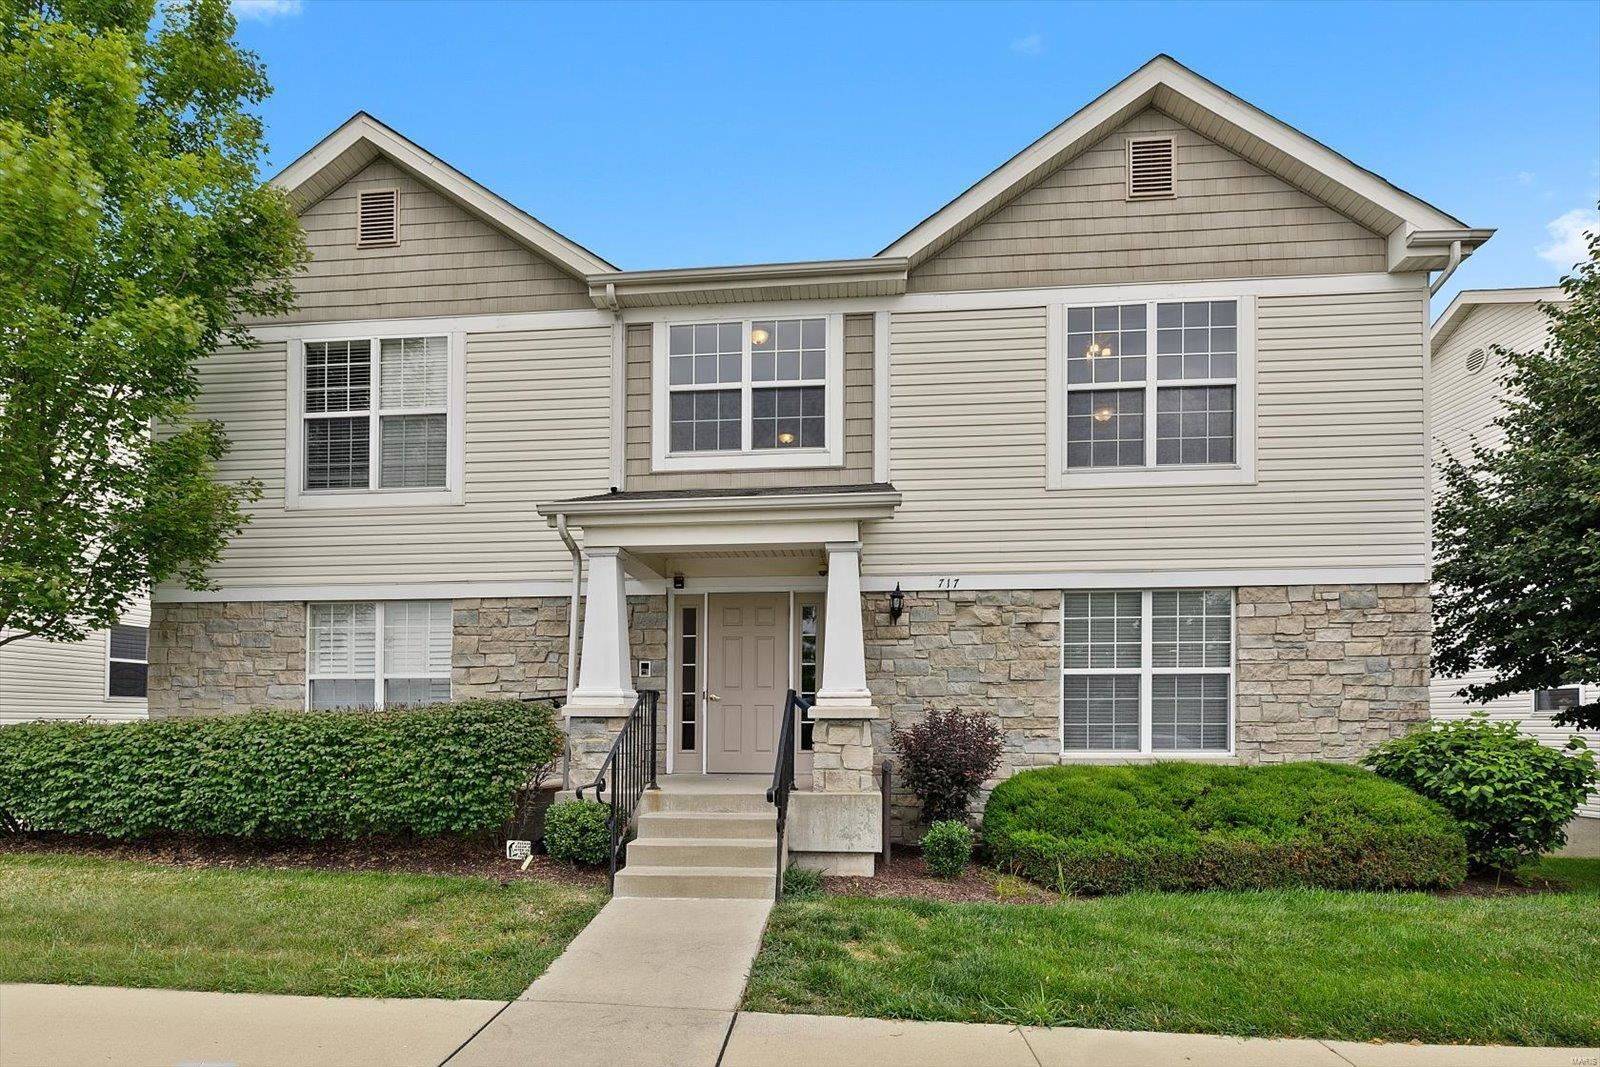 717 Tower Grove, Fairview Heights, IL 62208 - #: 21054951